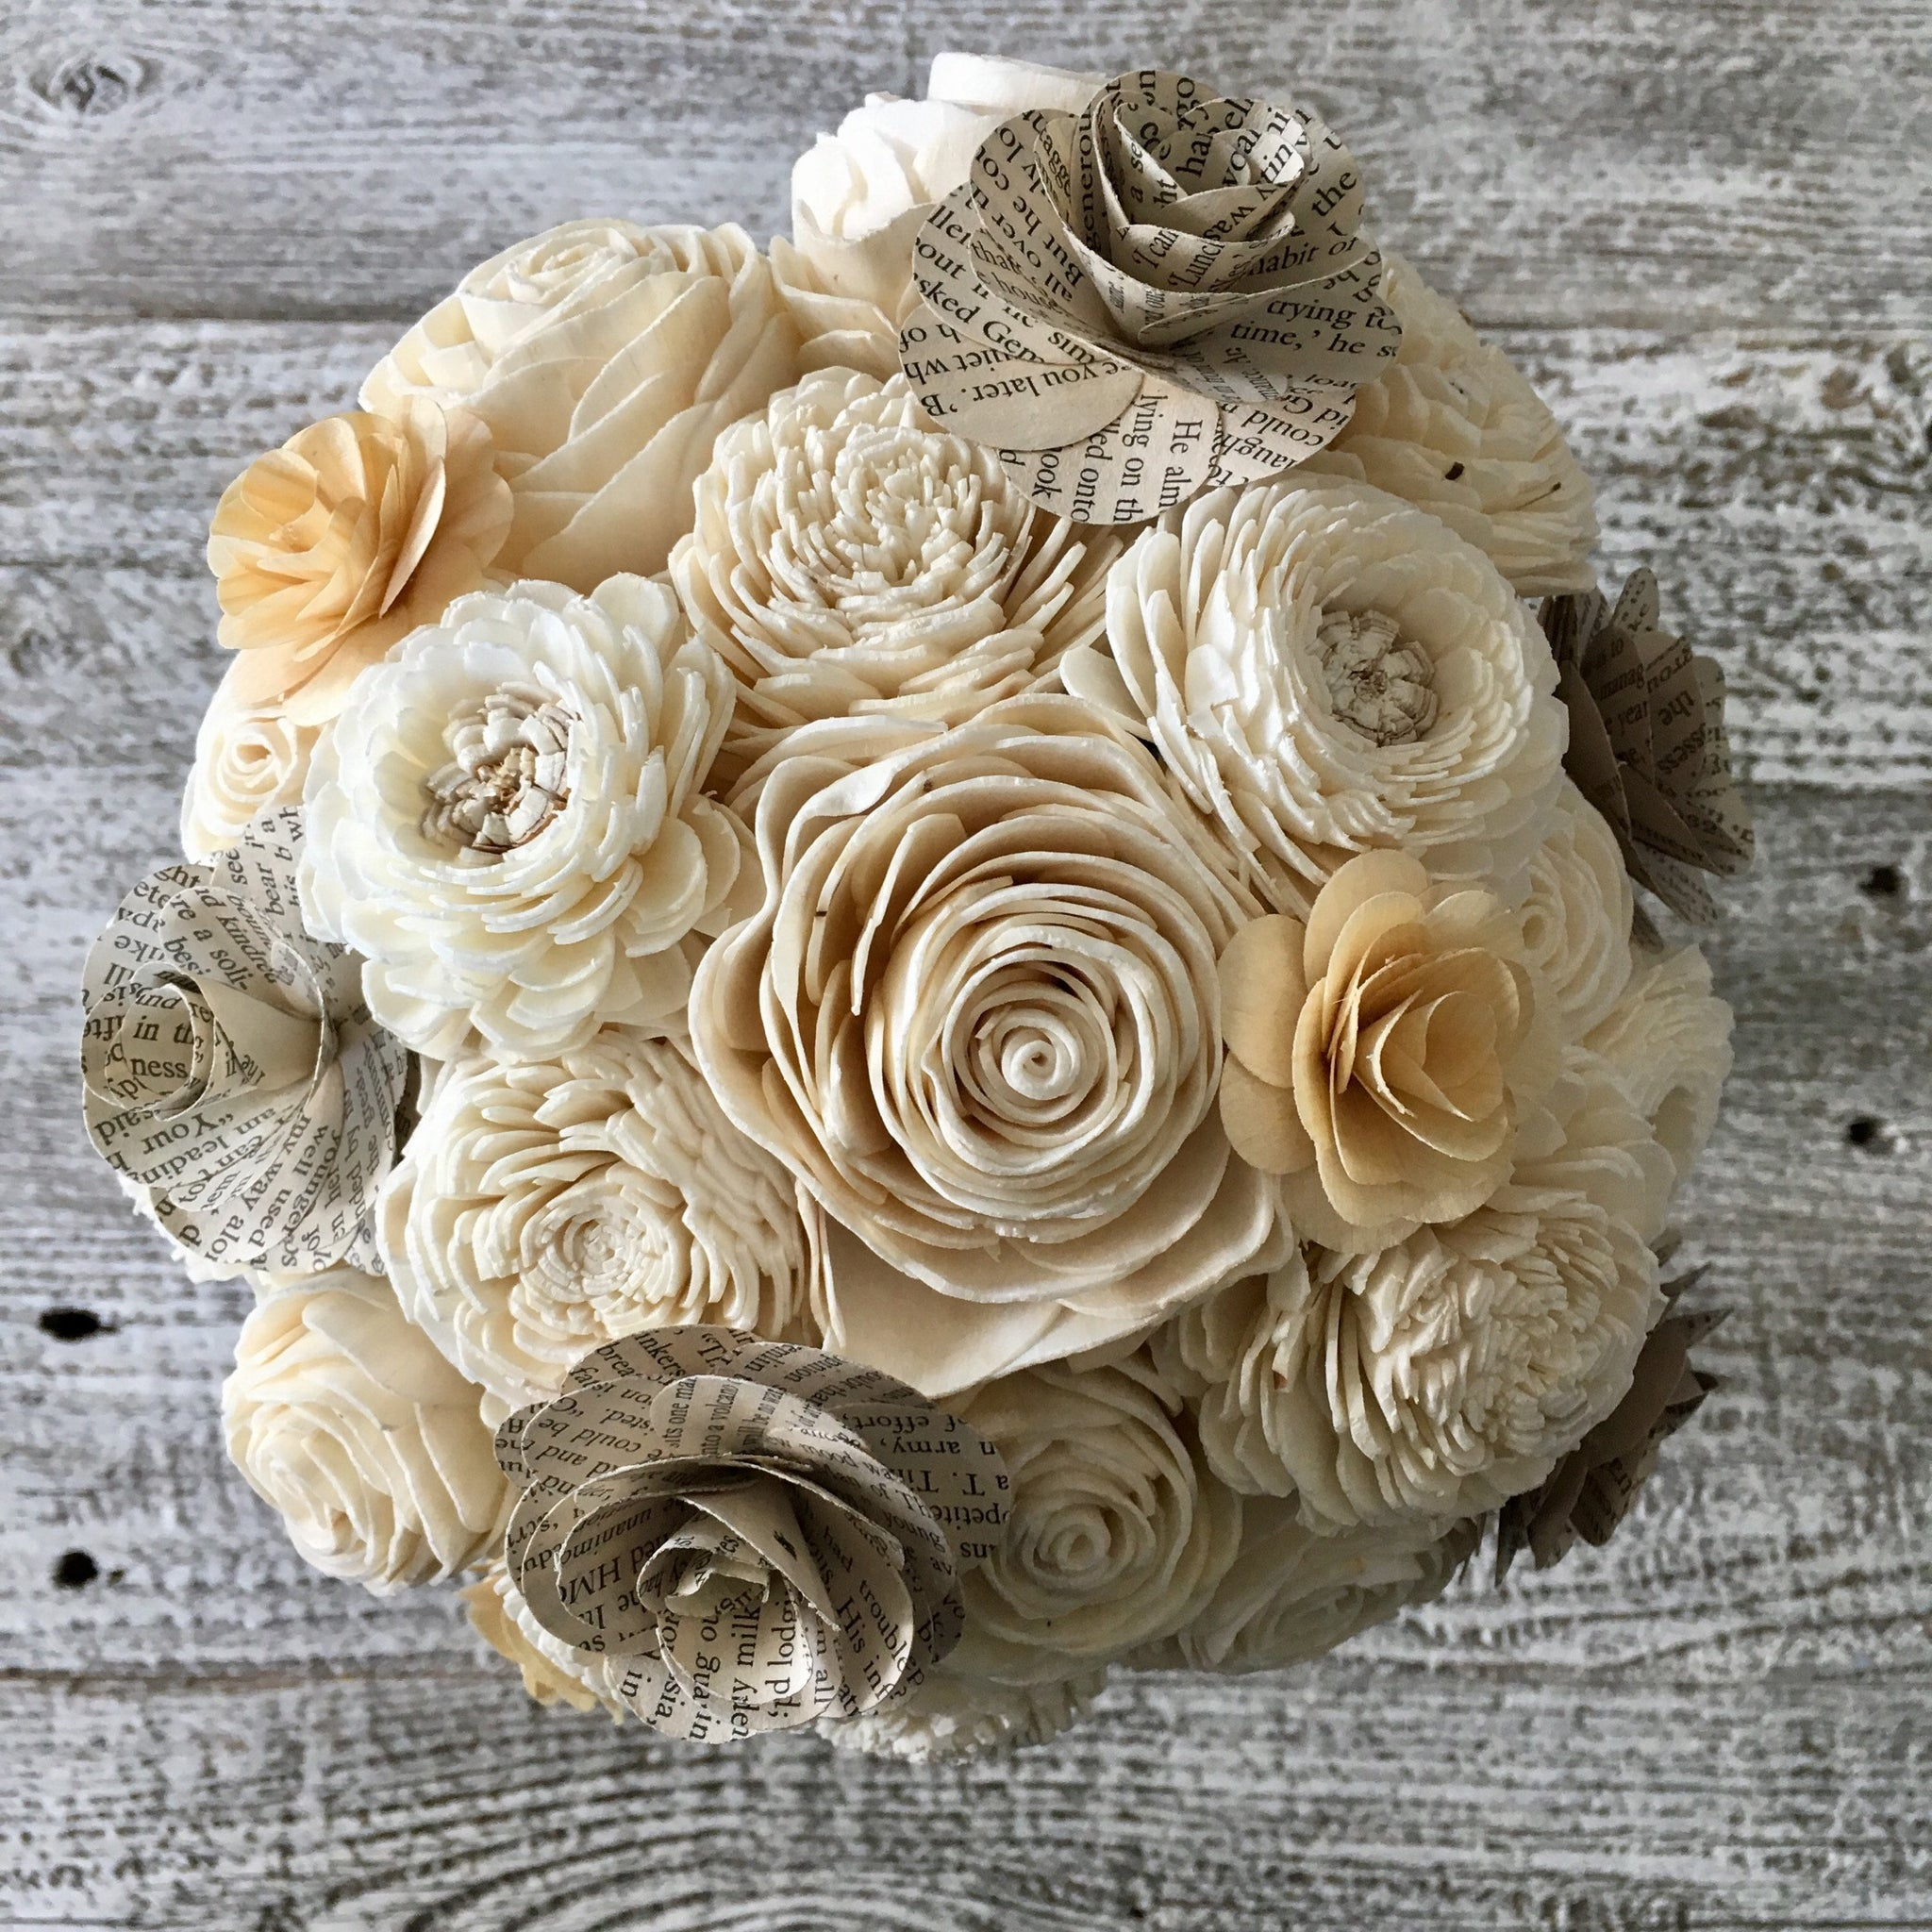 Sola Wood Flower and book page bouquet